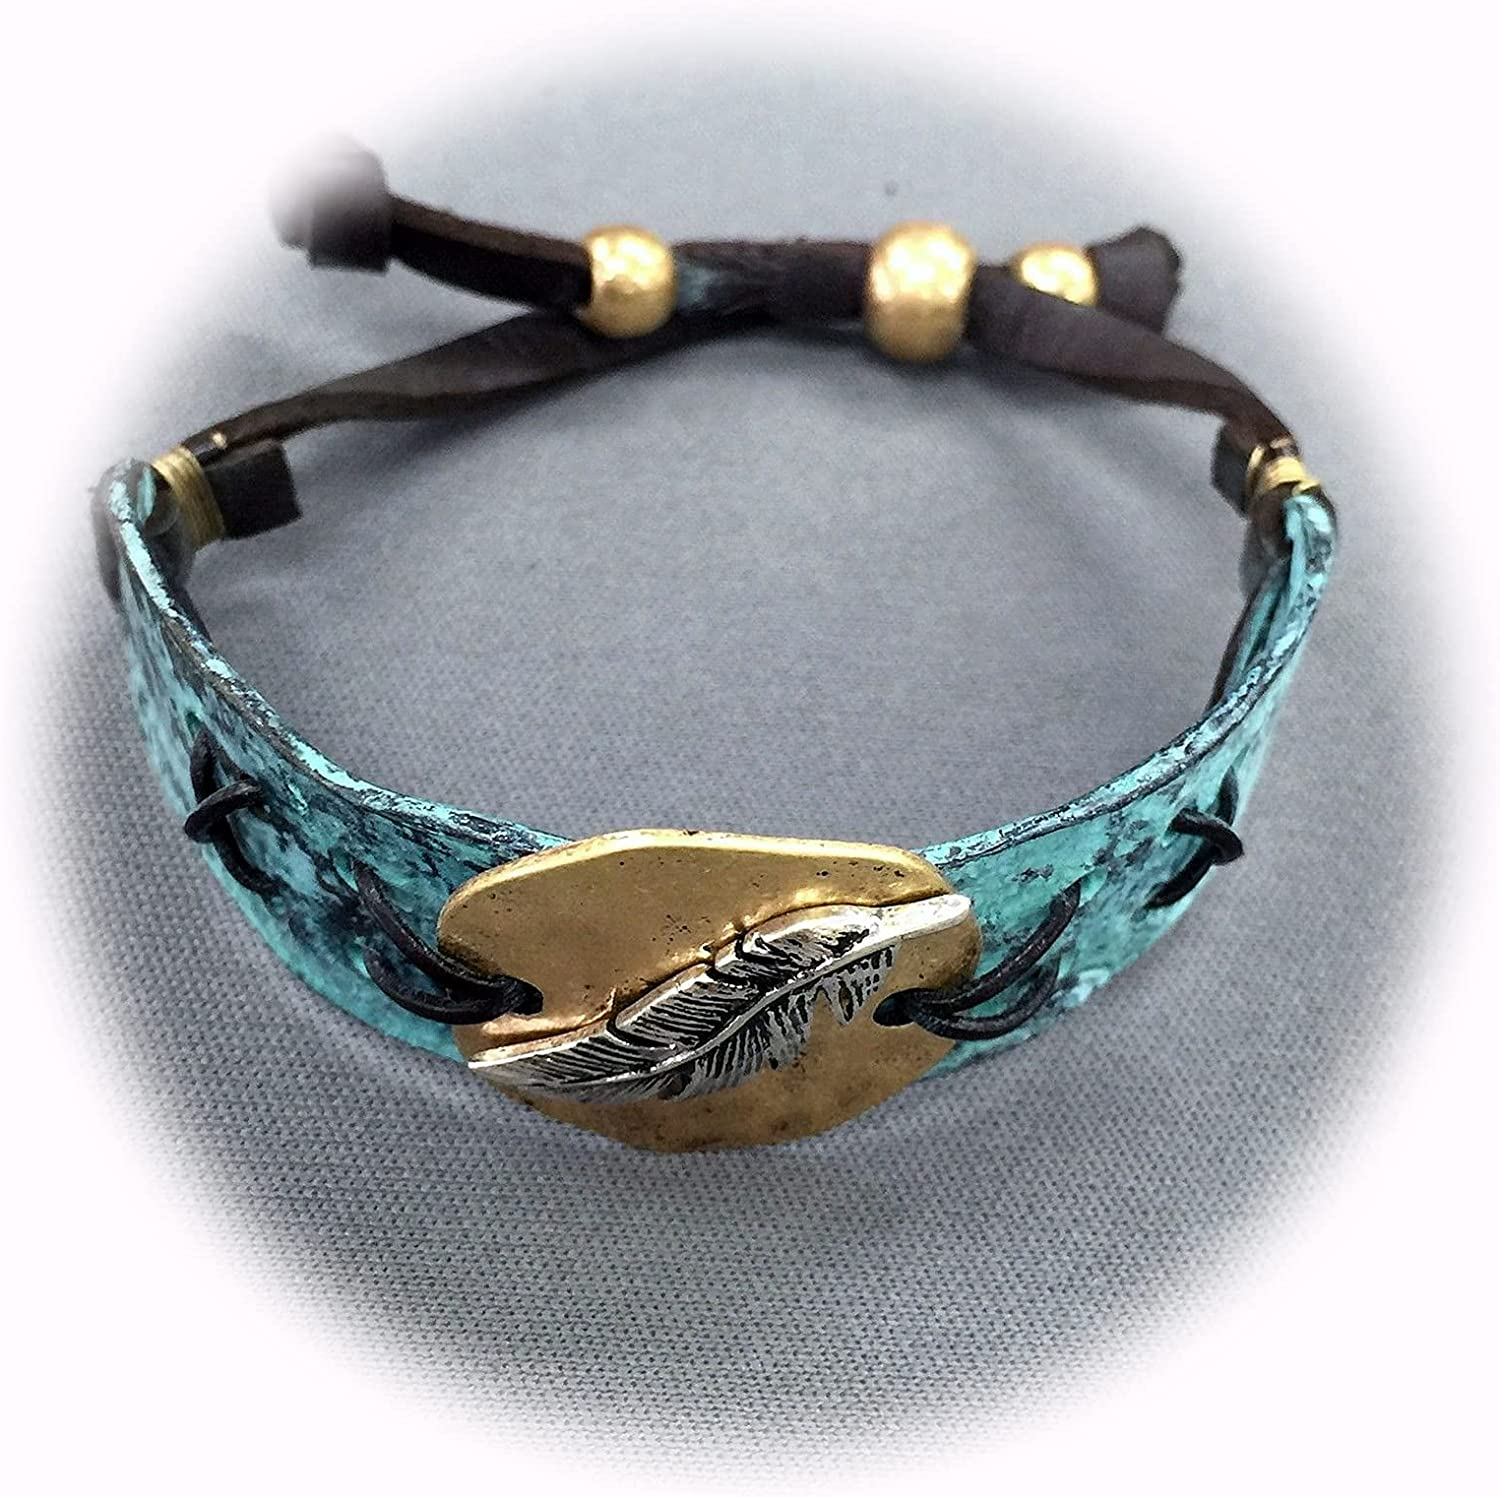 New Antique Max 69% OFF Max 52% OFF Metal Plate Hammered Feather Strap Leather Statement